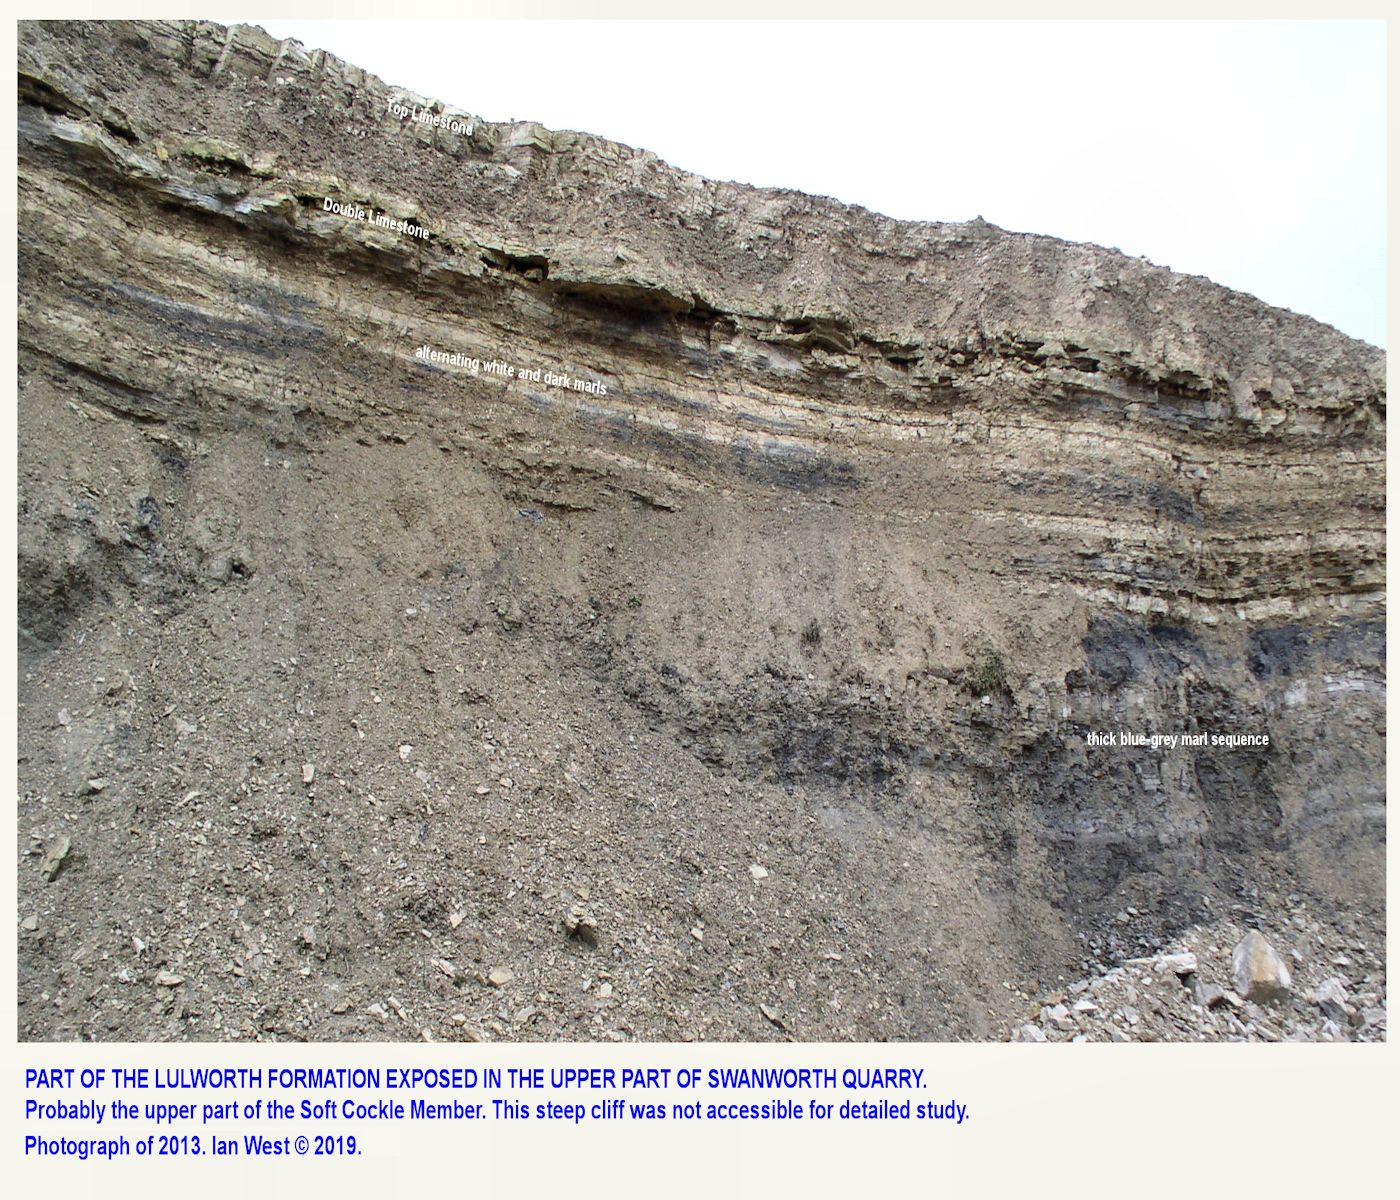 More details of the Lower Purbeck or Lulworth Formation, eastern face of Swanworth Quarry, 2003, image update of 2019